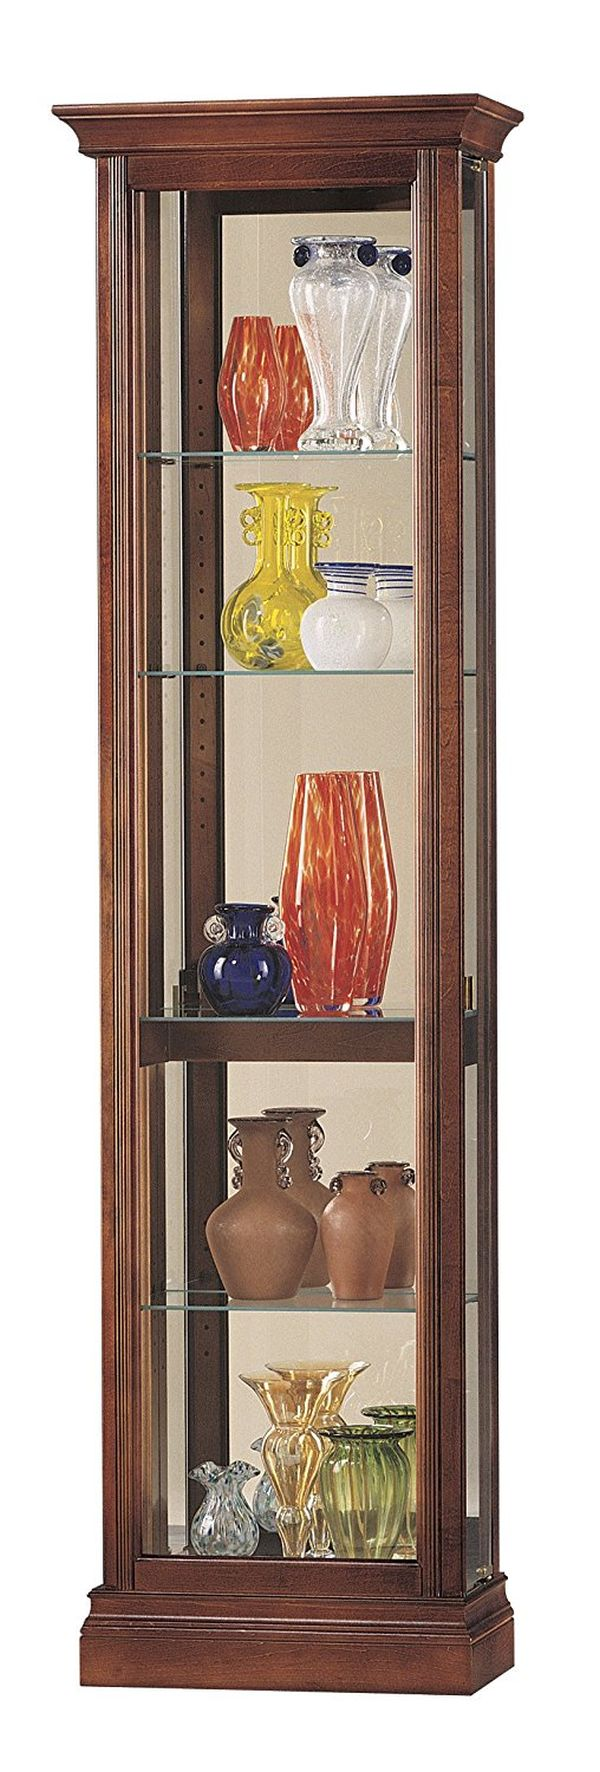 Howard Miller 680-245 Gregory Curio Cabinet